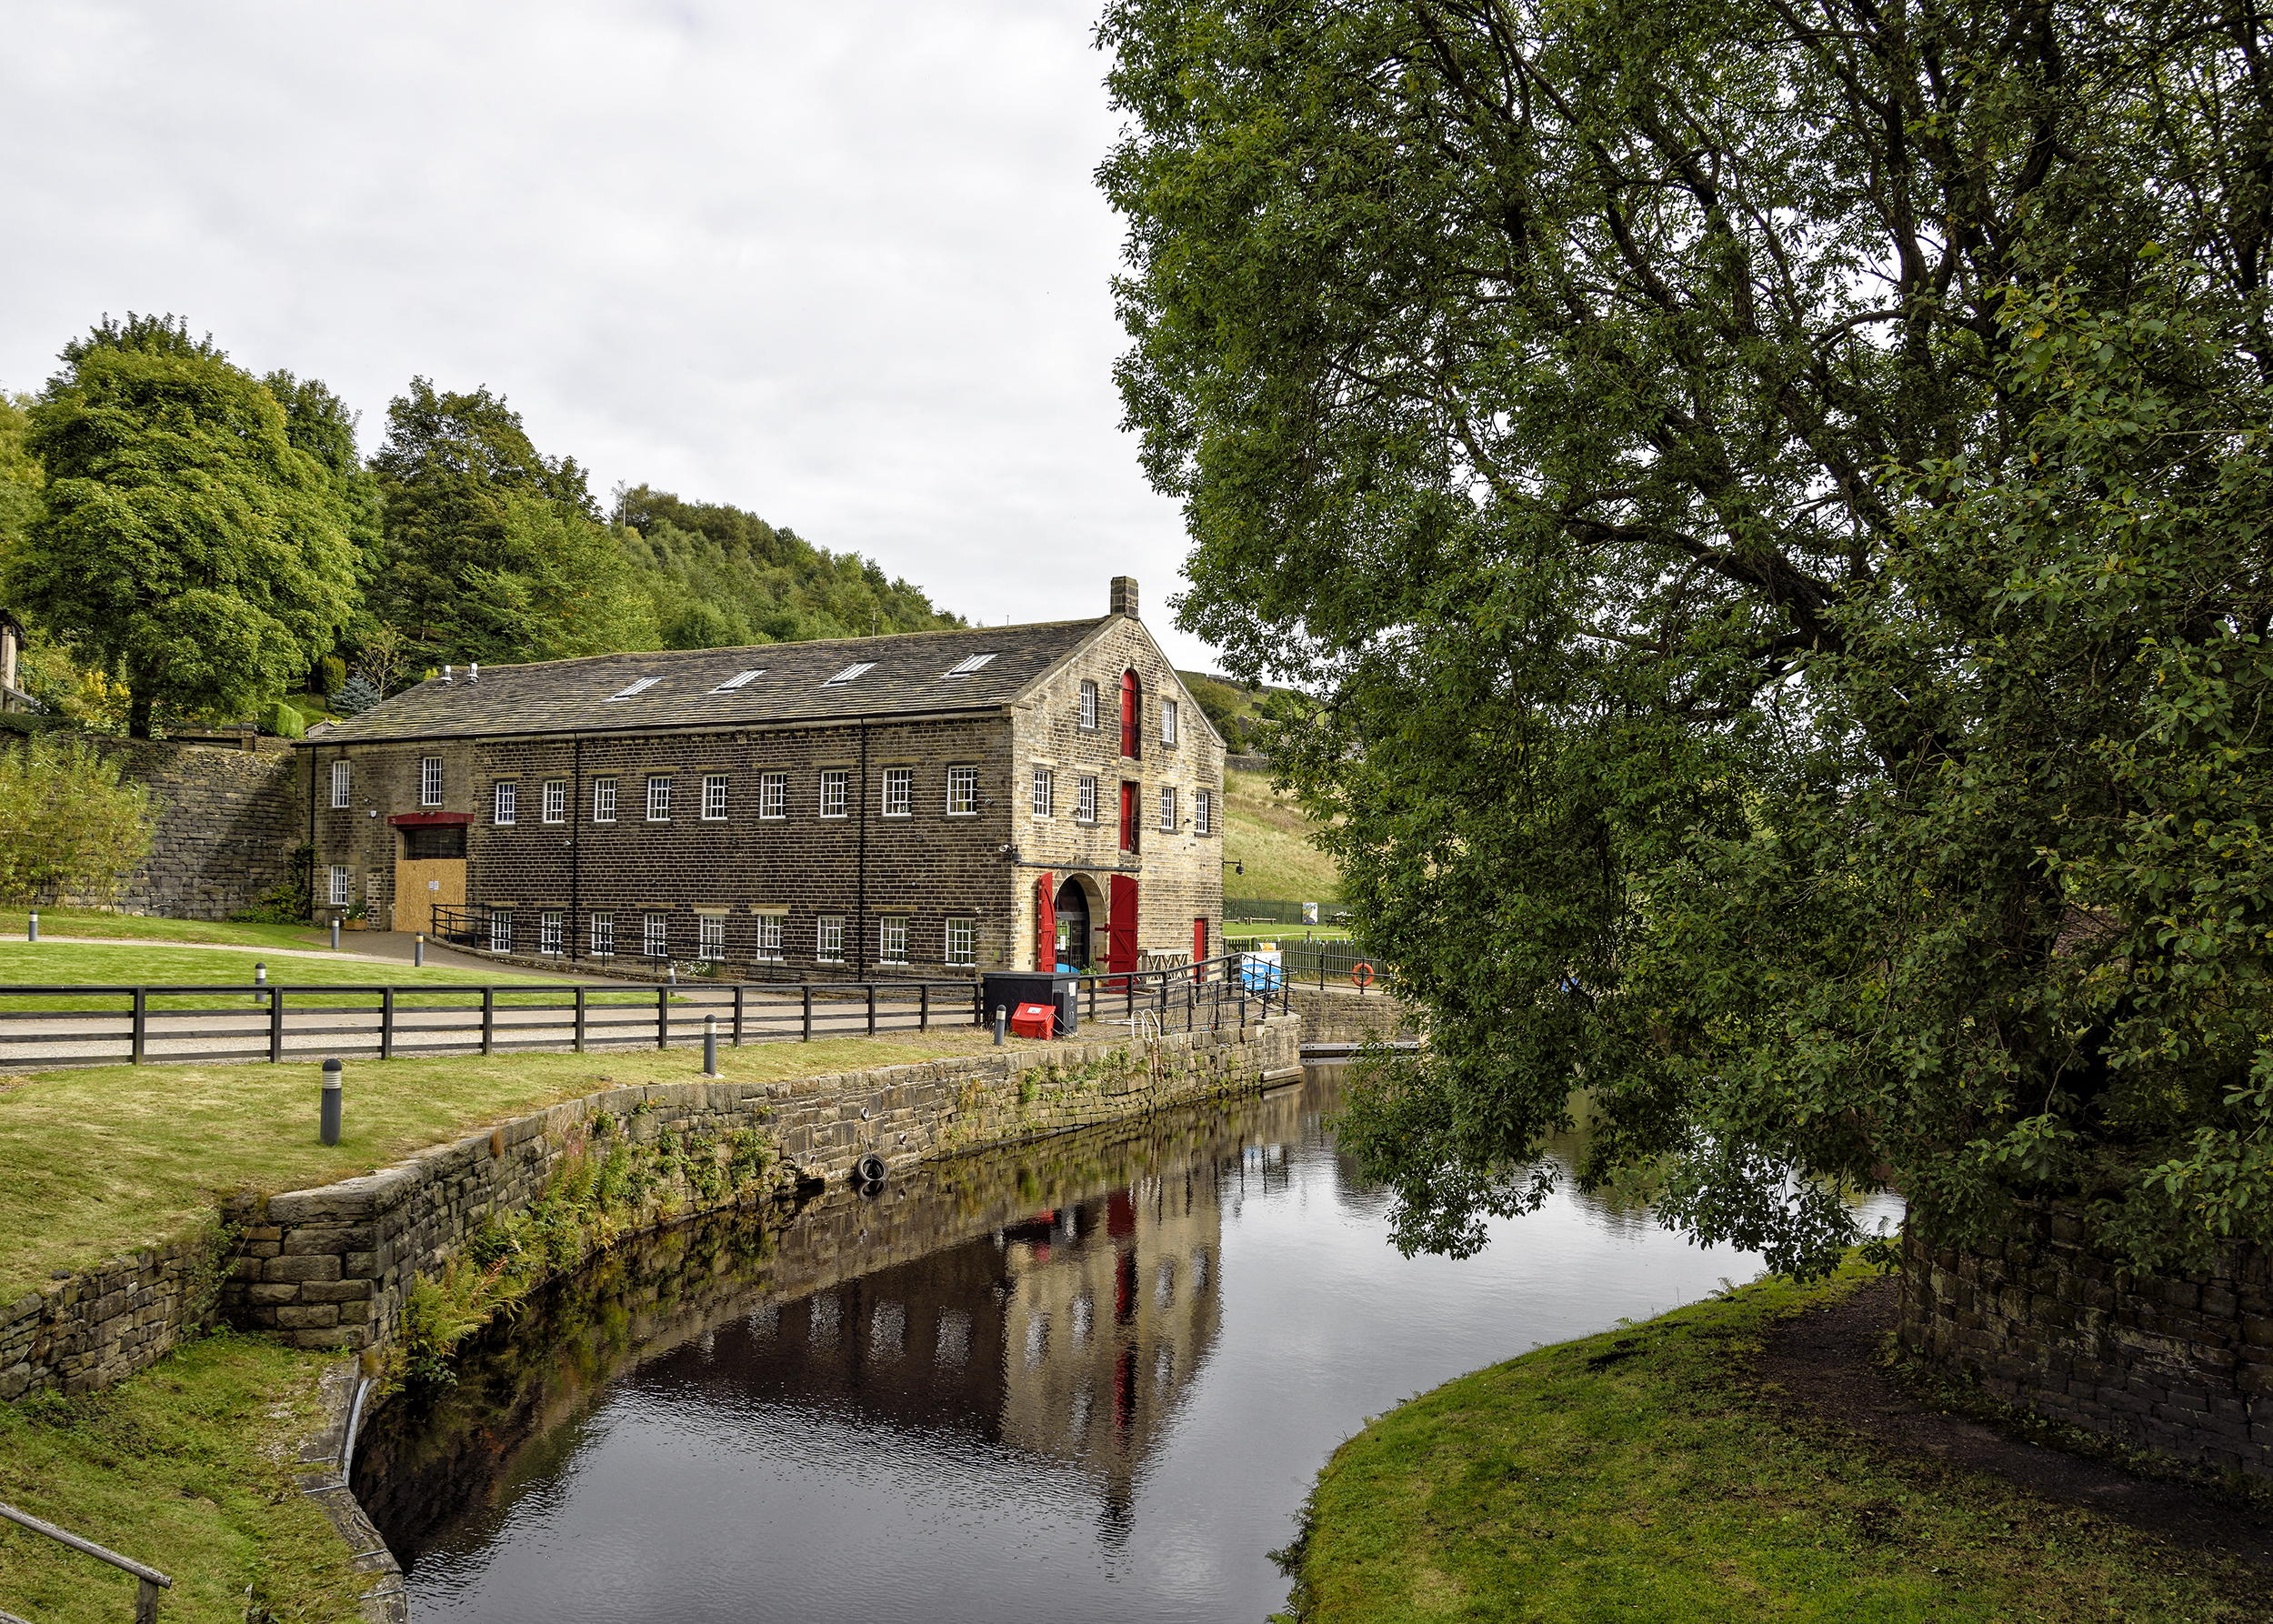 The Standedge warehouse and visitor centre